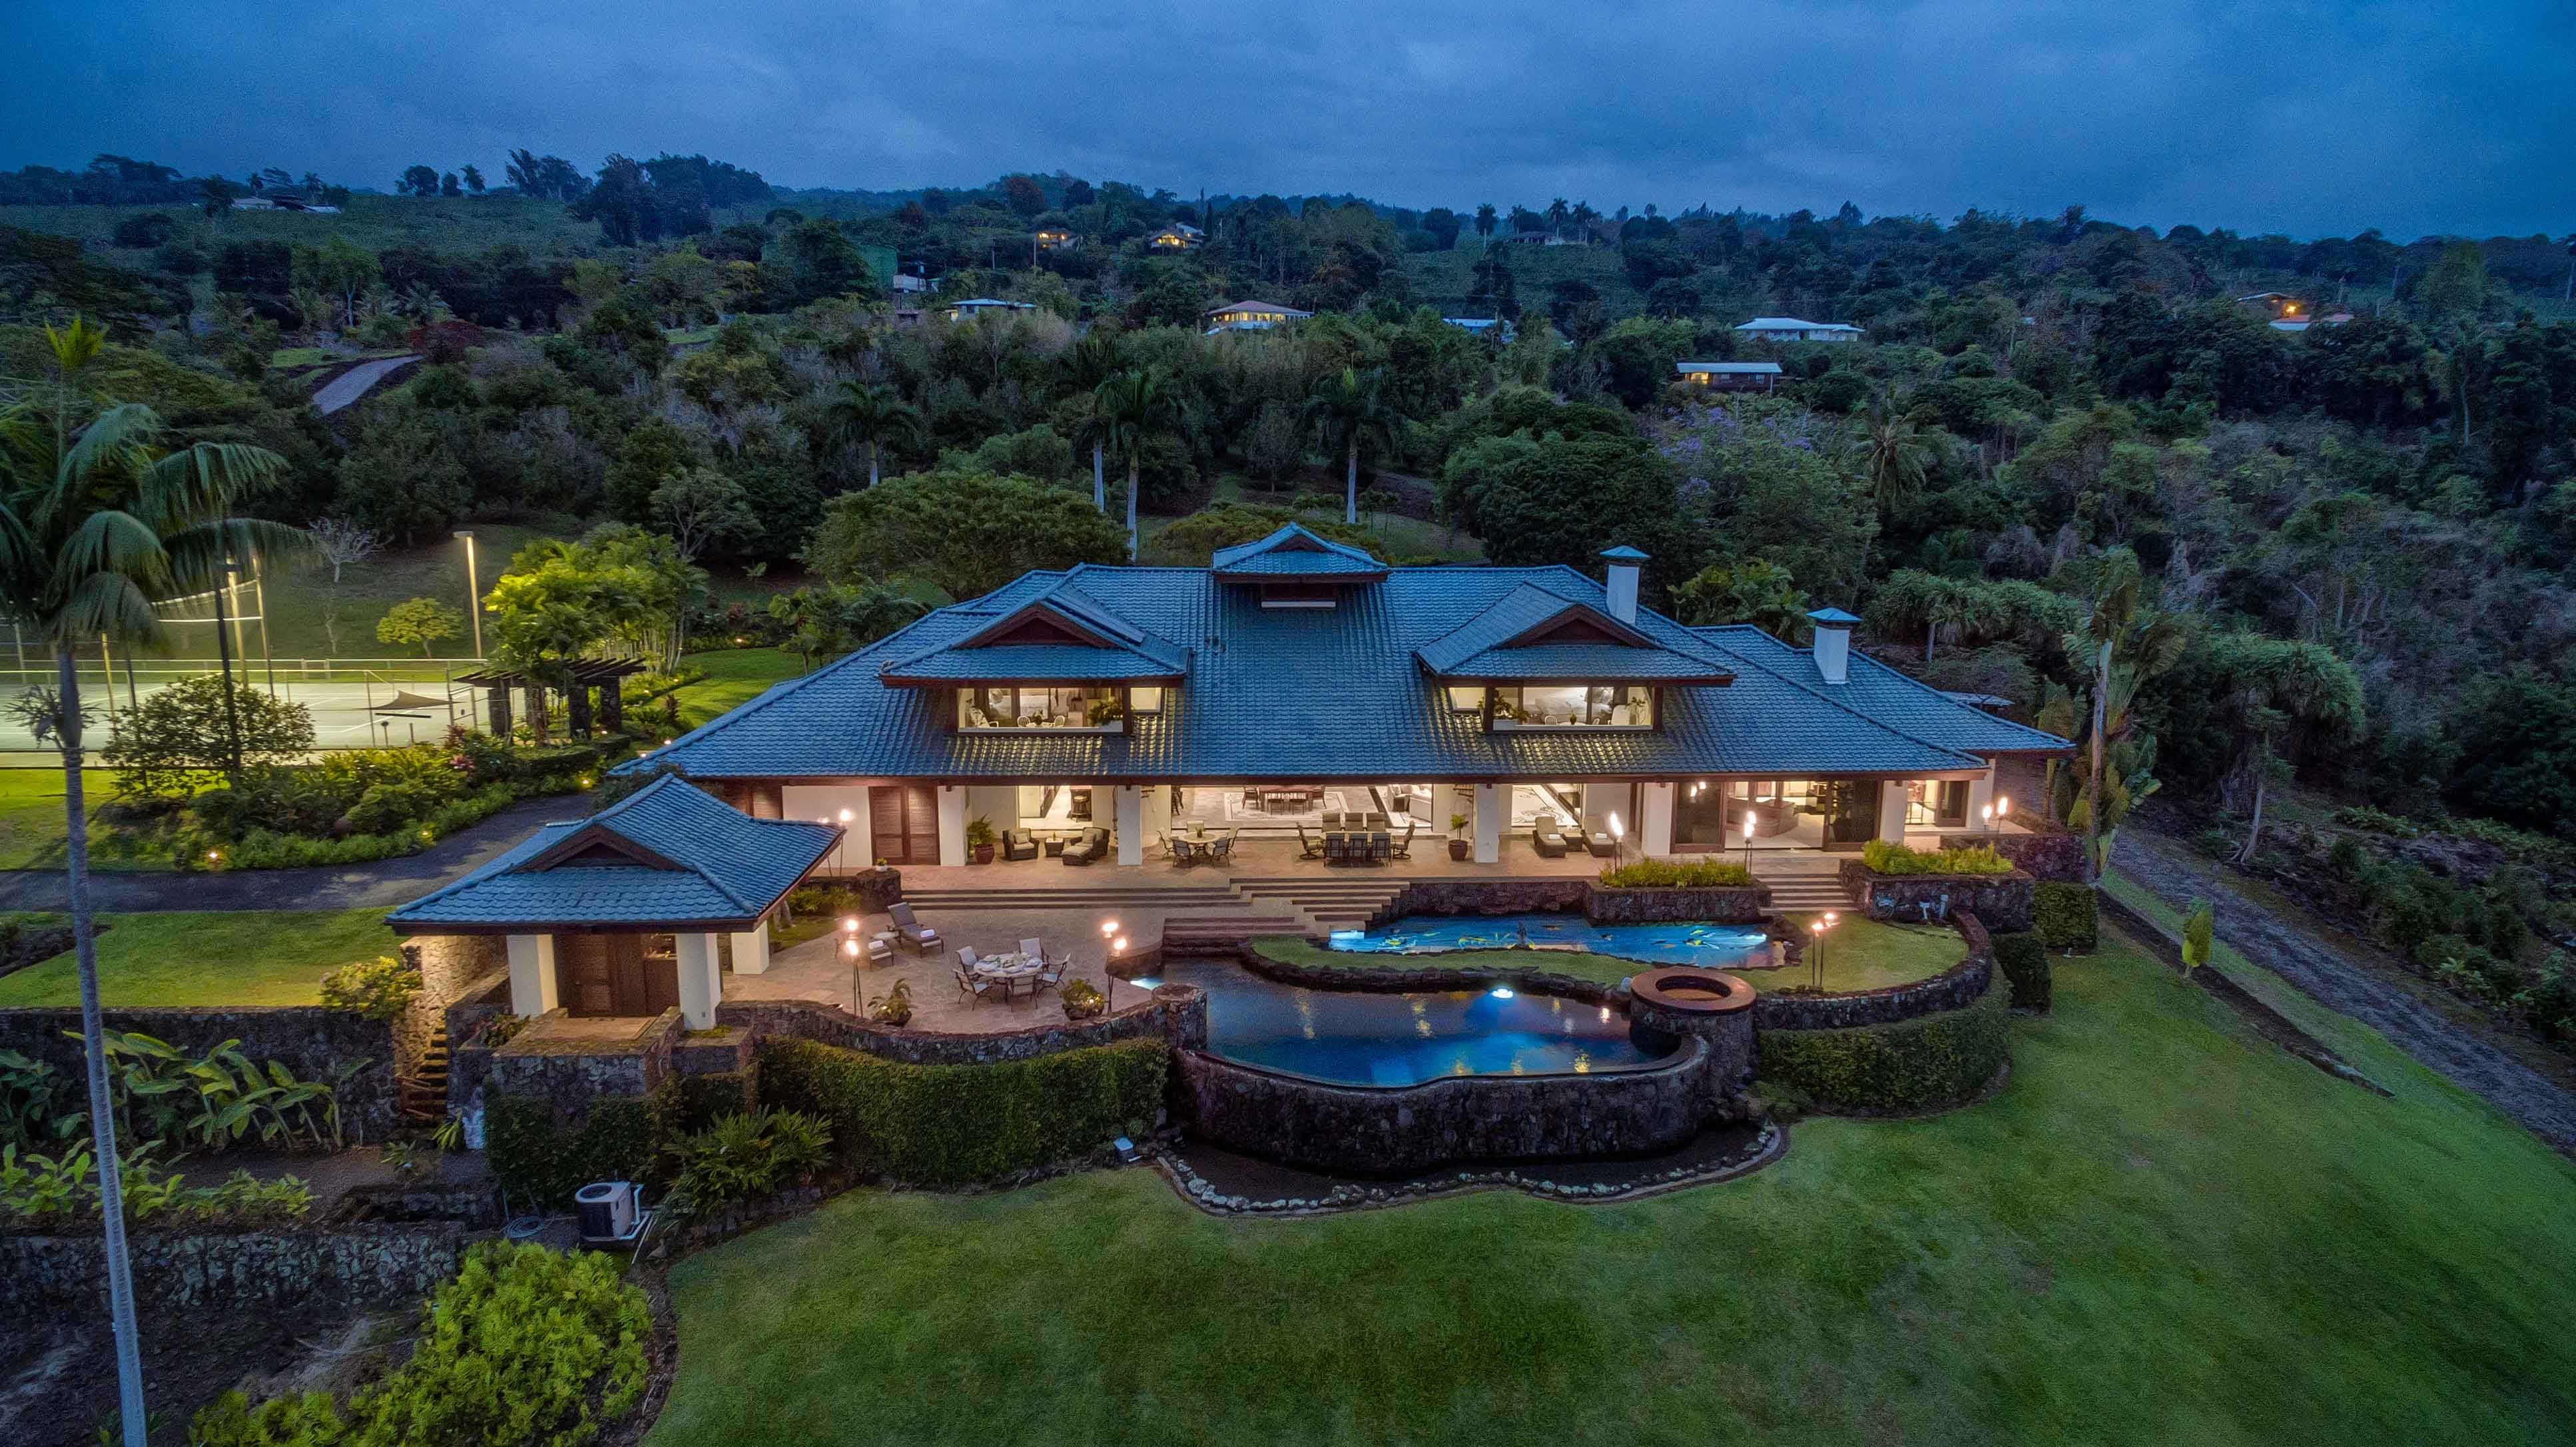 This private estate on Hawaii's Kona Coast has an alfresco dining terrace surrounded by Japanese-inspired botanical gardens with a koi pond, waterfalls, and exotic fruit and nut trees.